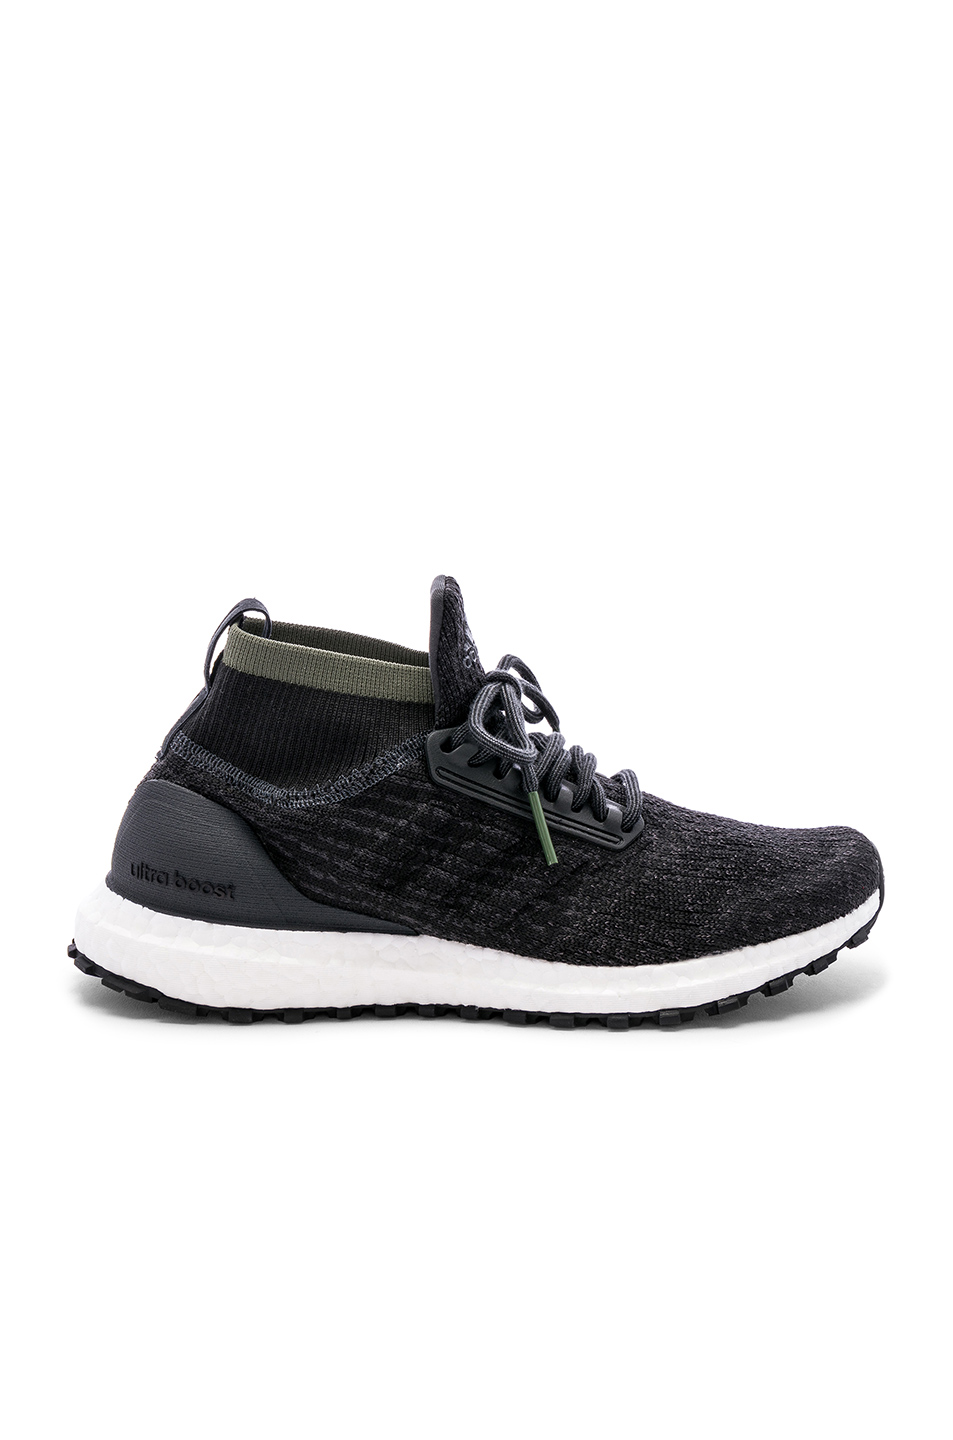 7cdde326ac4 Buy Original adidas Originals UltraBoost All Terrain at Indonesia ...